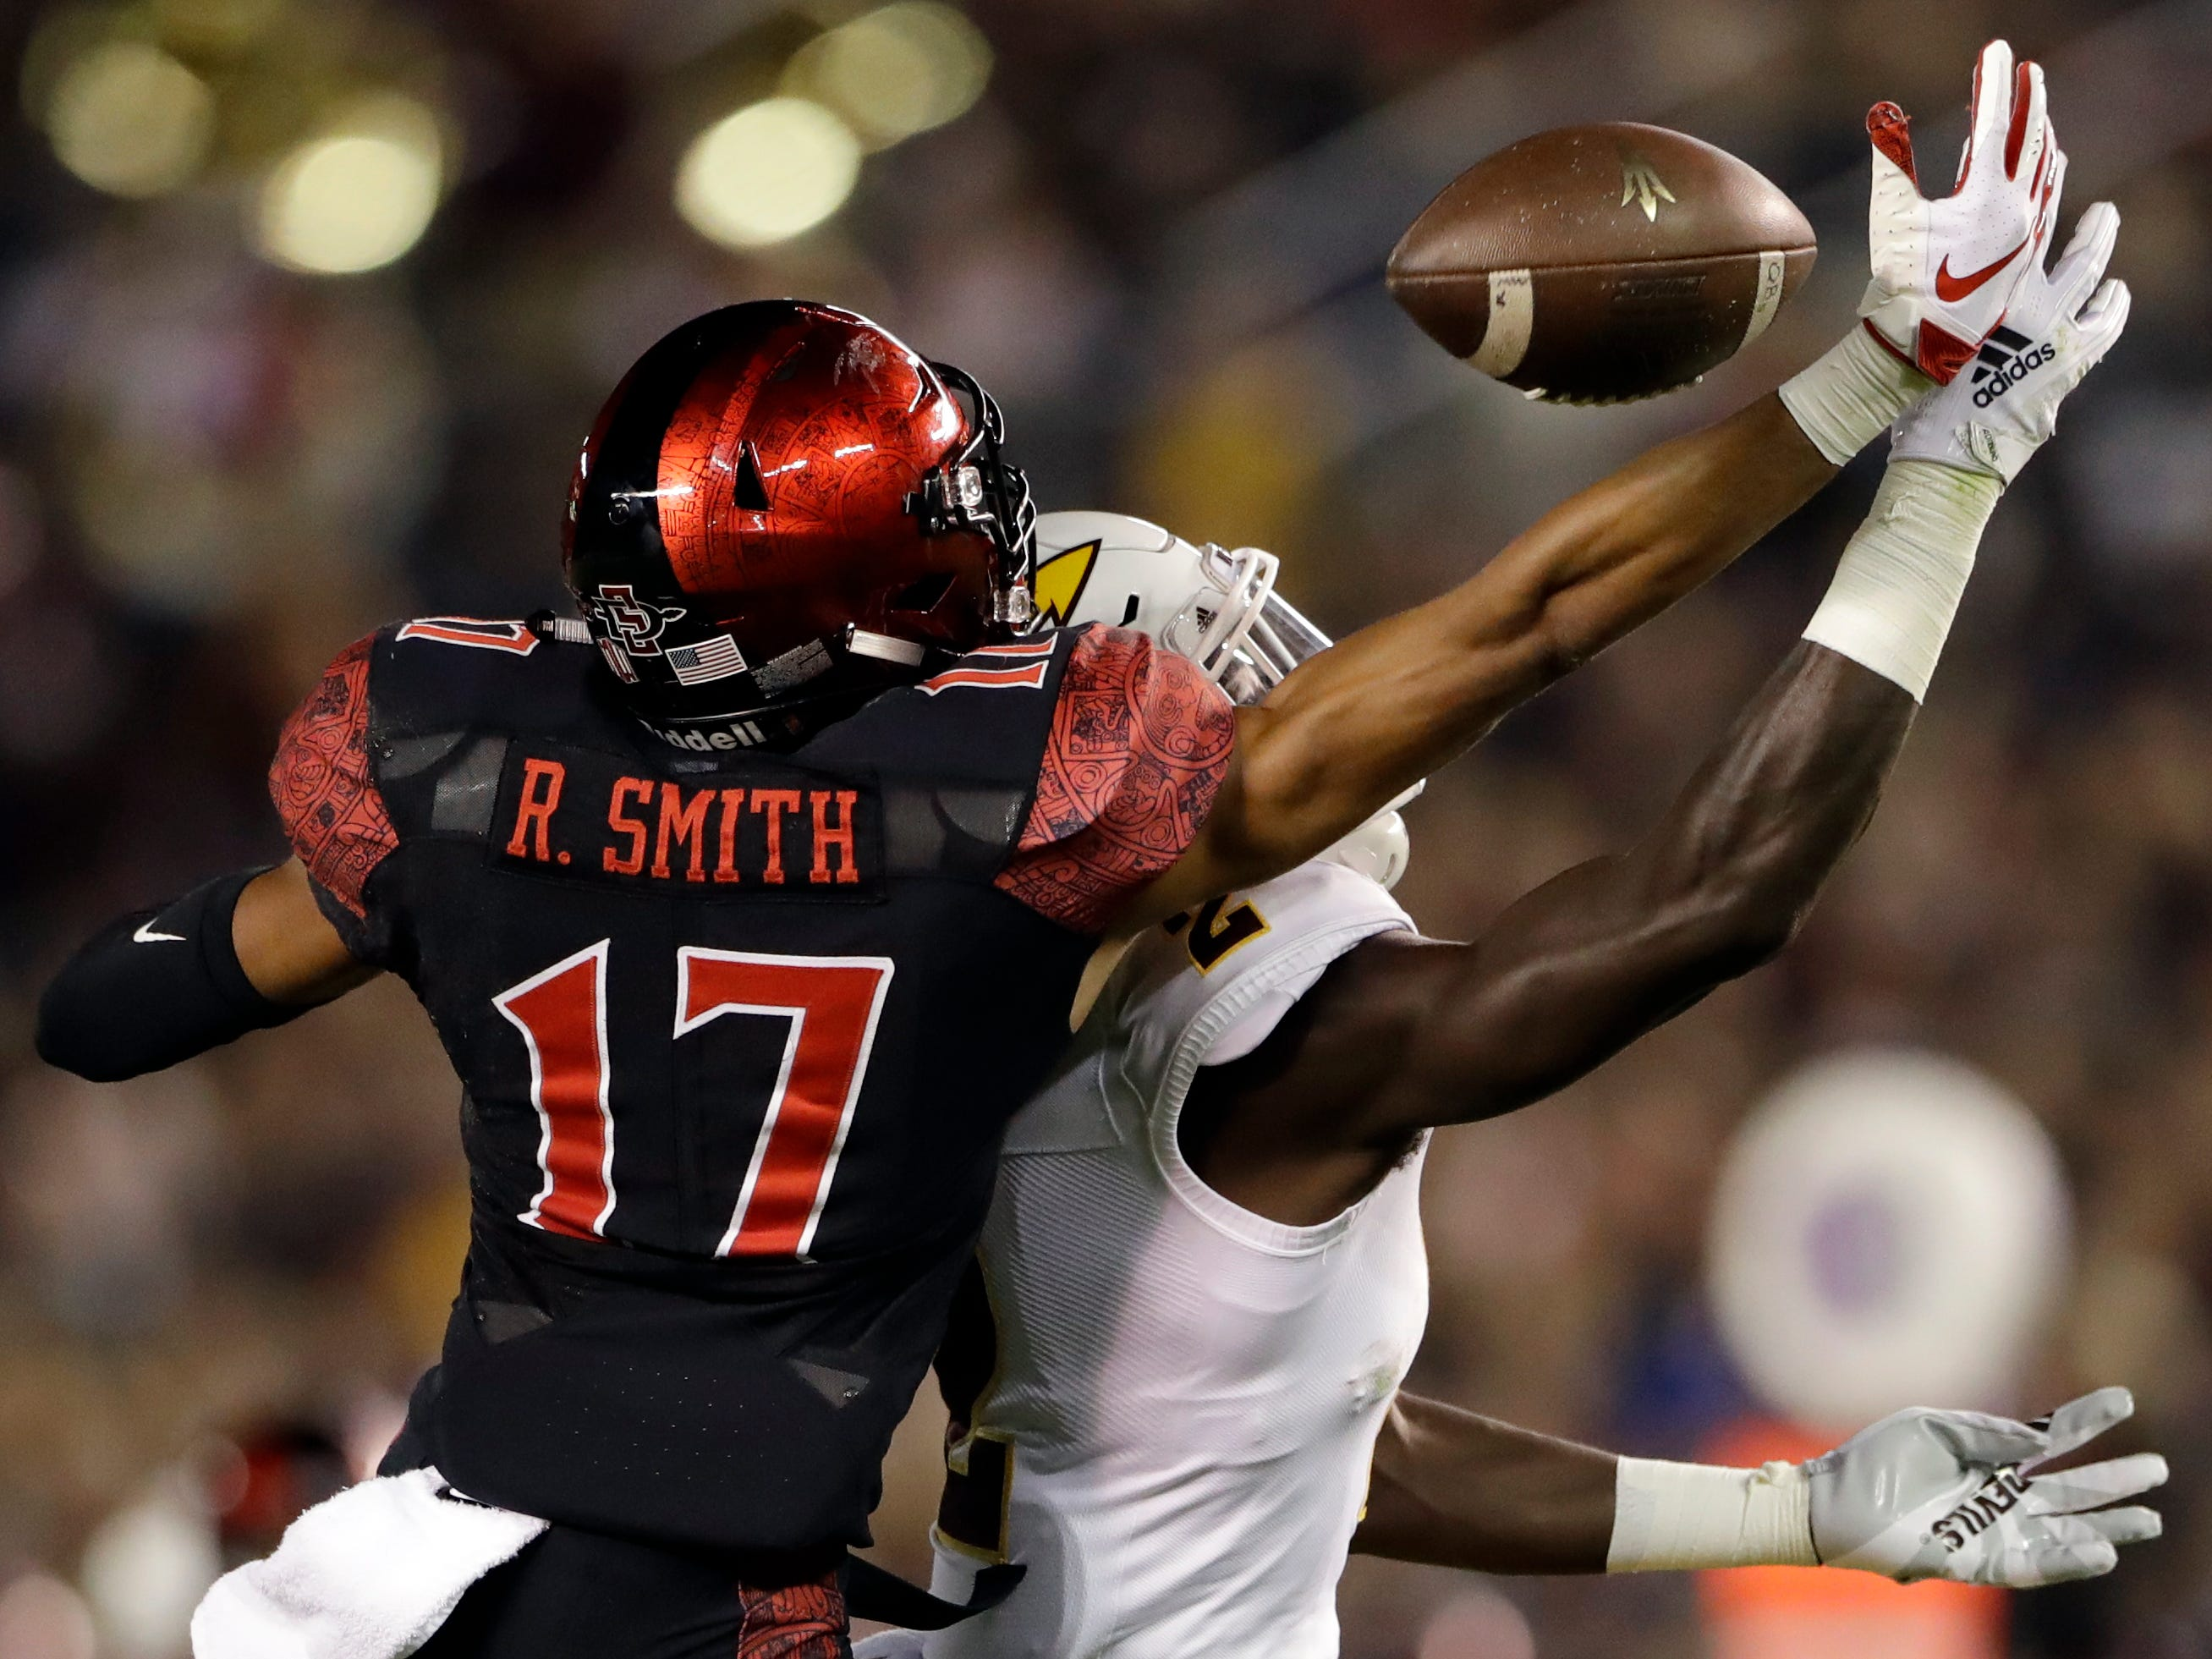 San Diego State cornerback Ron Smith (17) breaks up a pass intended for Arizona State wide receiver Brandon Aiyuk during the first half of an NCAA college football game, Saturday, Sept. 15, 2018, in San Diego. (AP Photo/Gregory Bull)